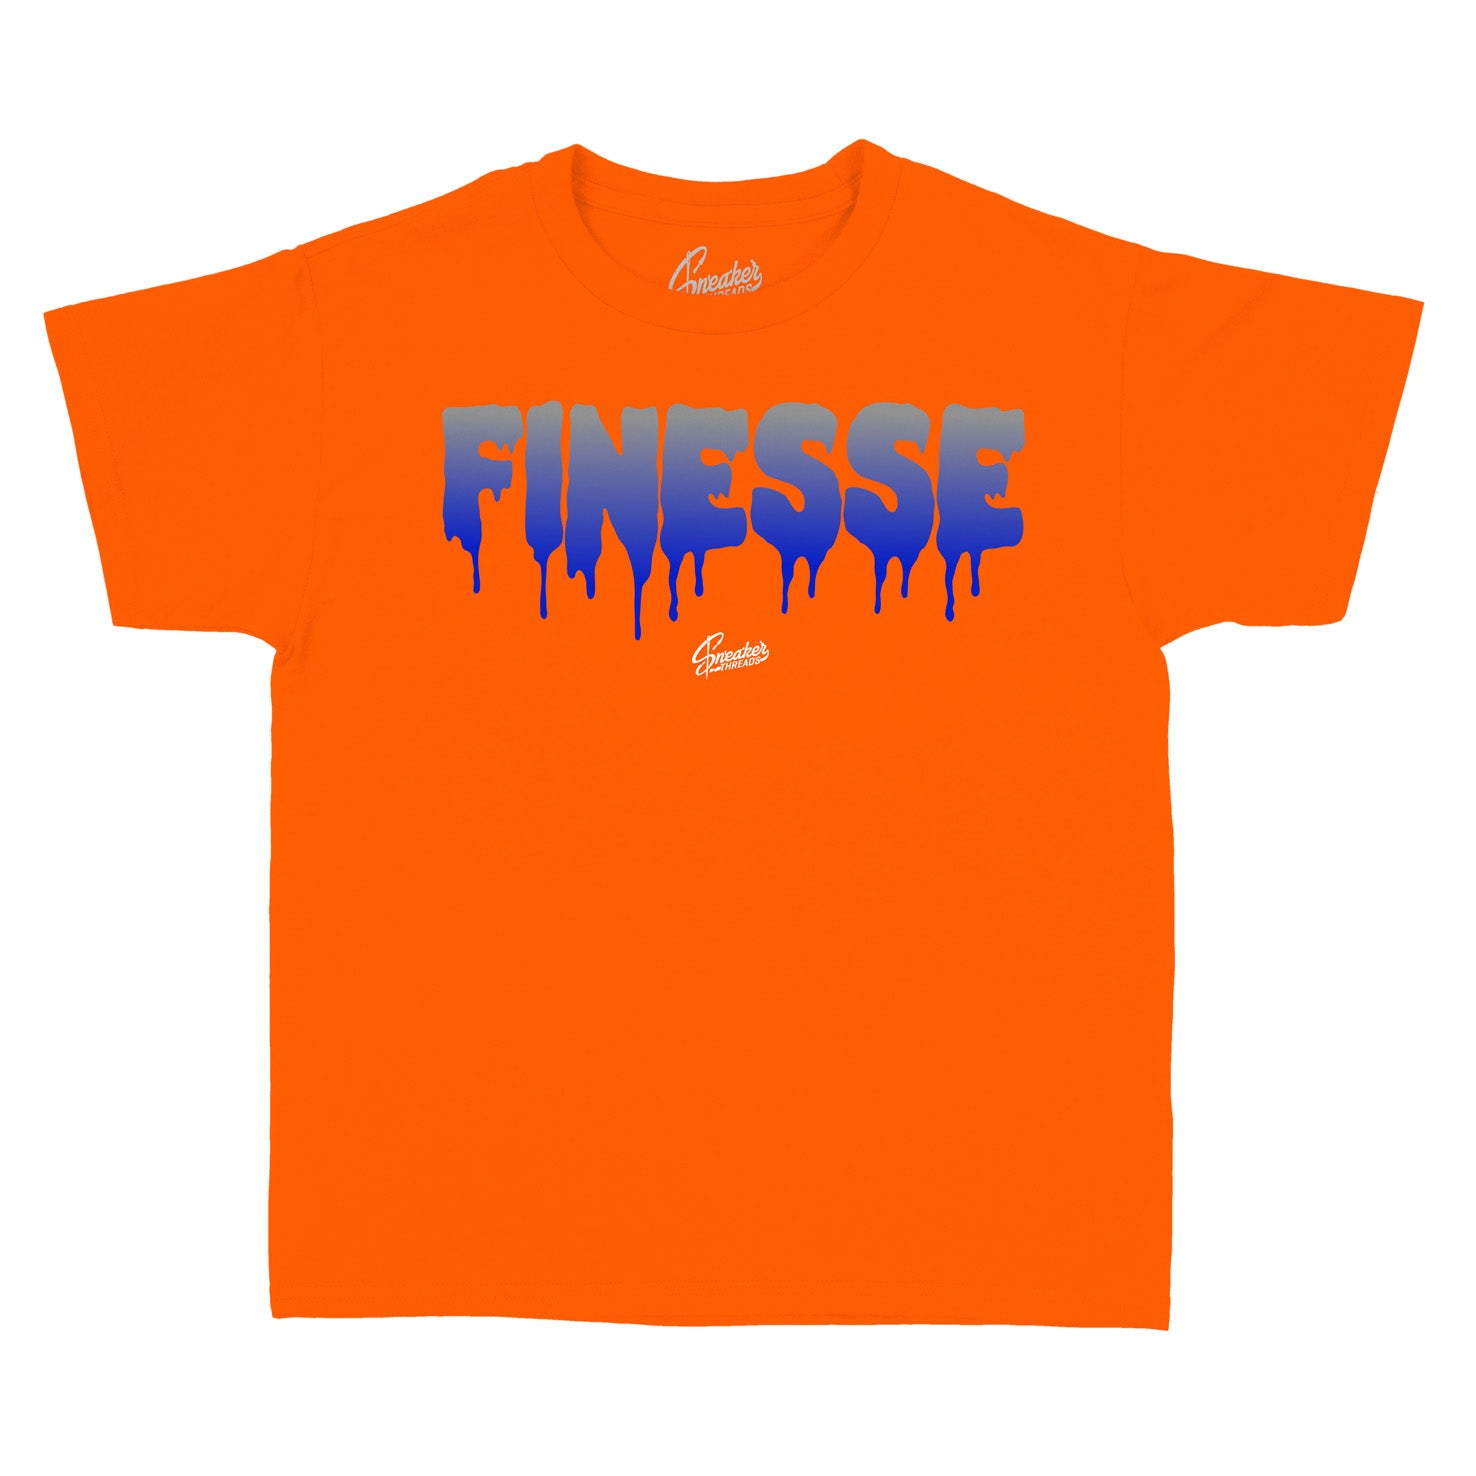 Kids shirt collection made to match the Jordan 3 knick kids sneaker collection